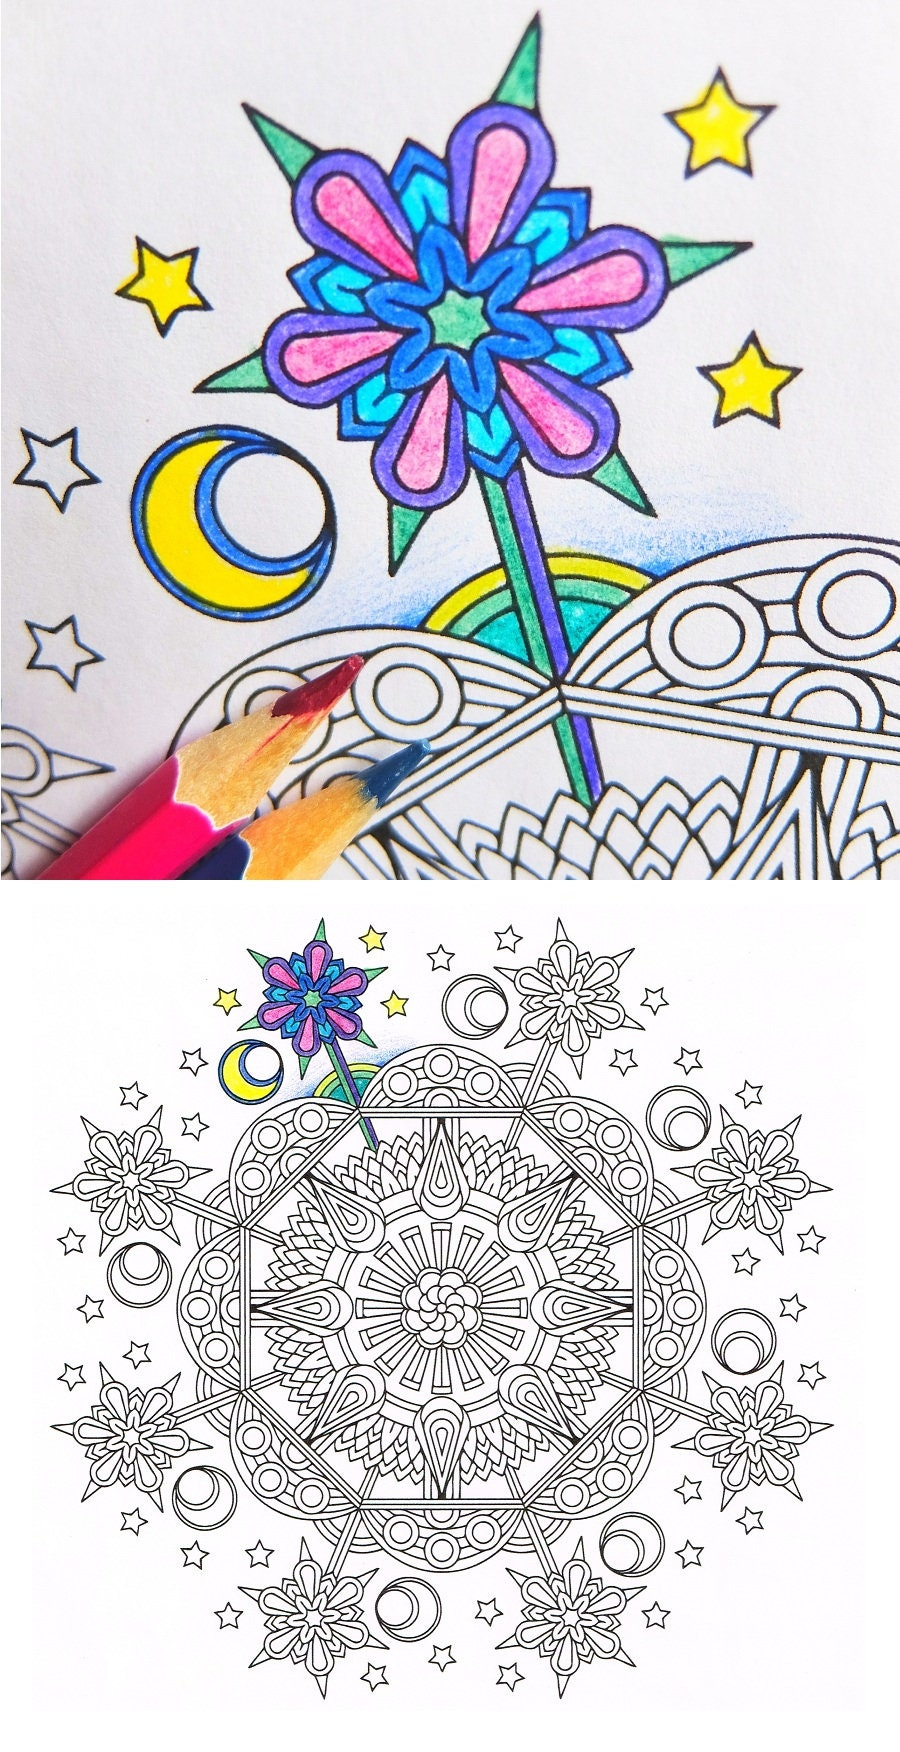 Mandala Coloring Page Enchanted Evening instant download